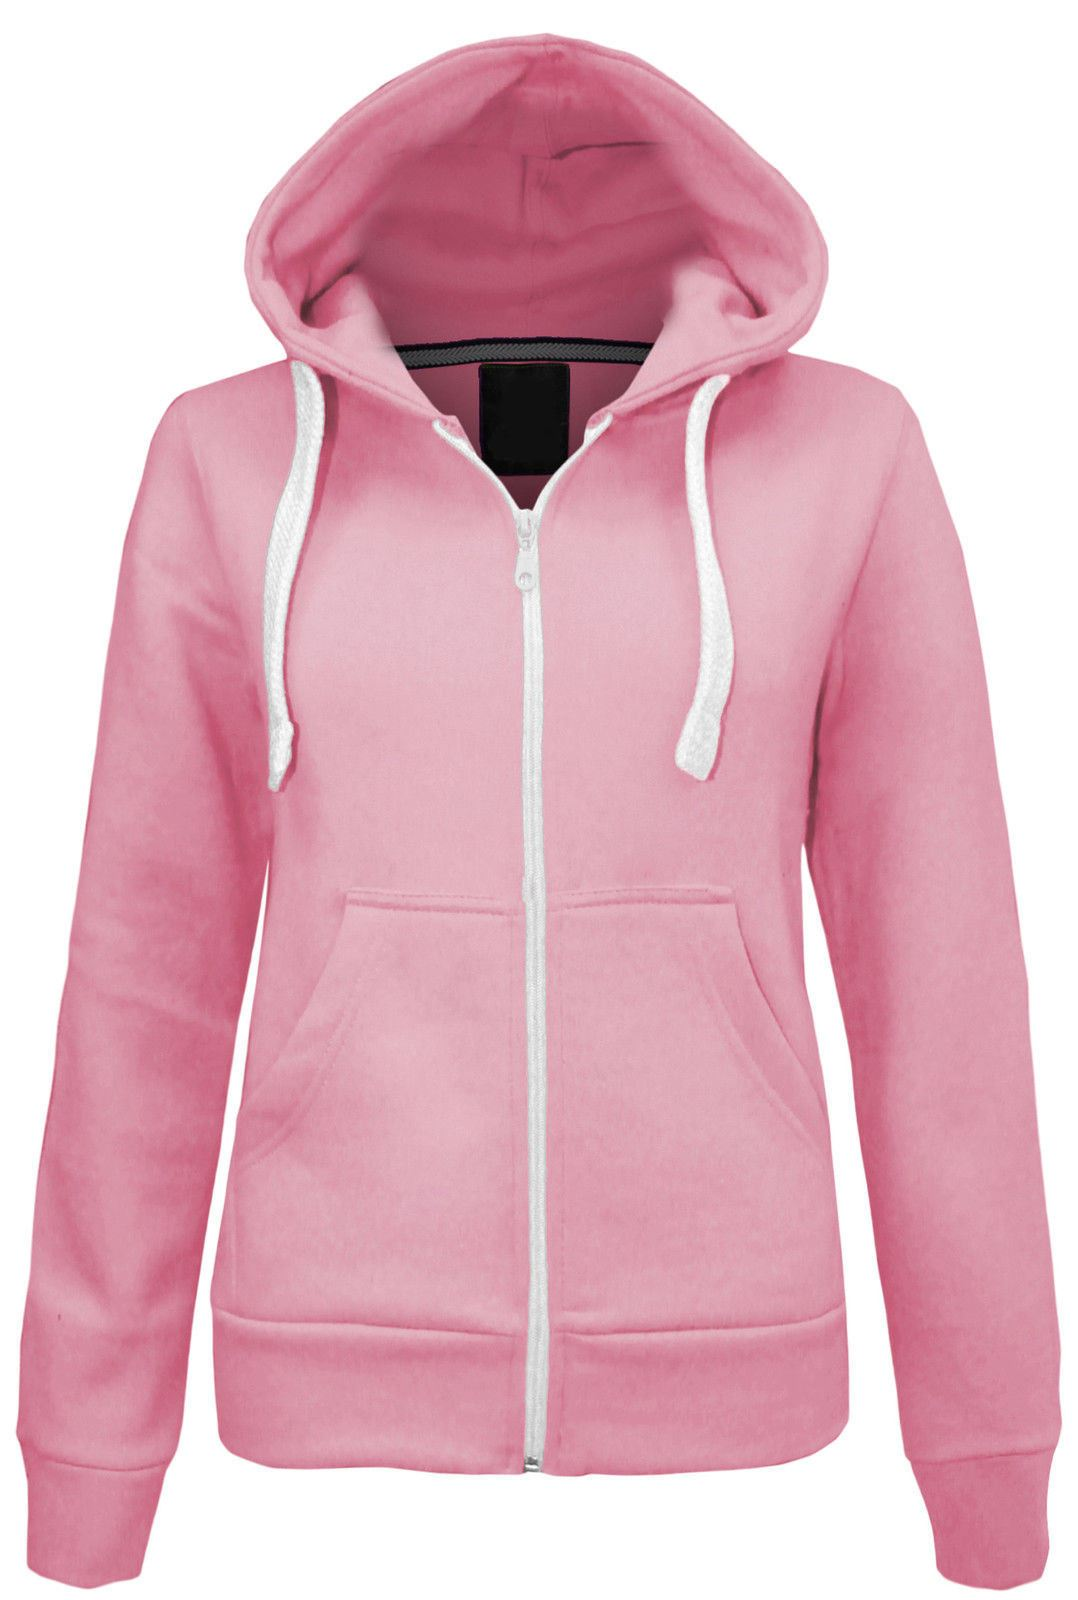 Pink Womens Hoodies | Fashion Ql